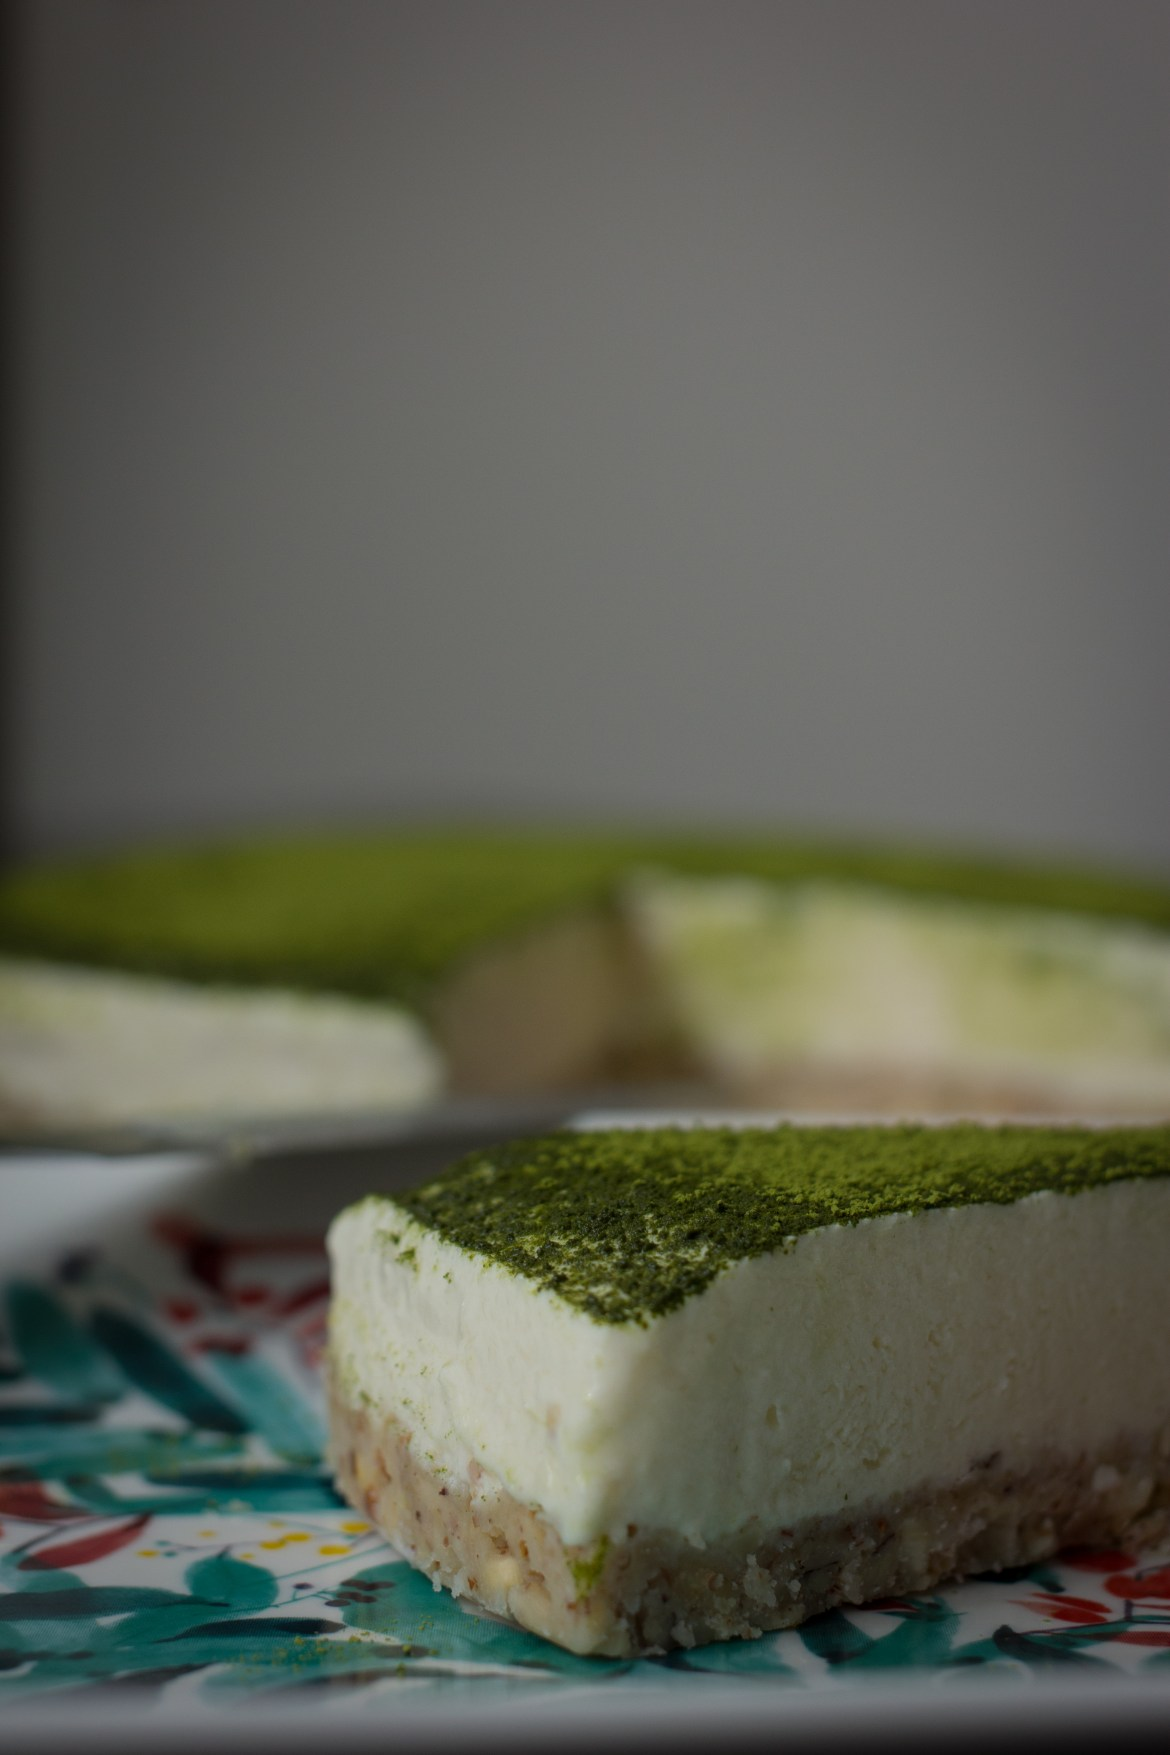 Slice of Tofu Matcha Cheesecake with Coconut Nutty Base